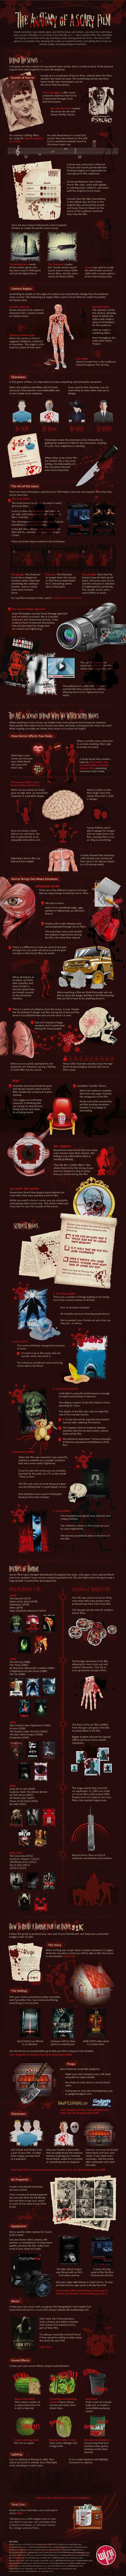 03 scary-film-infographica